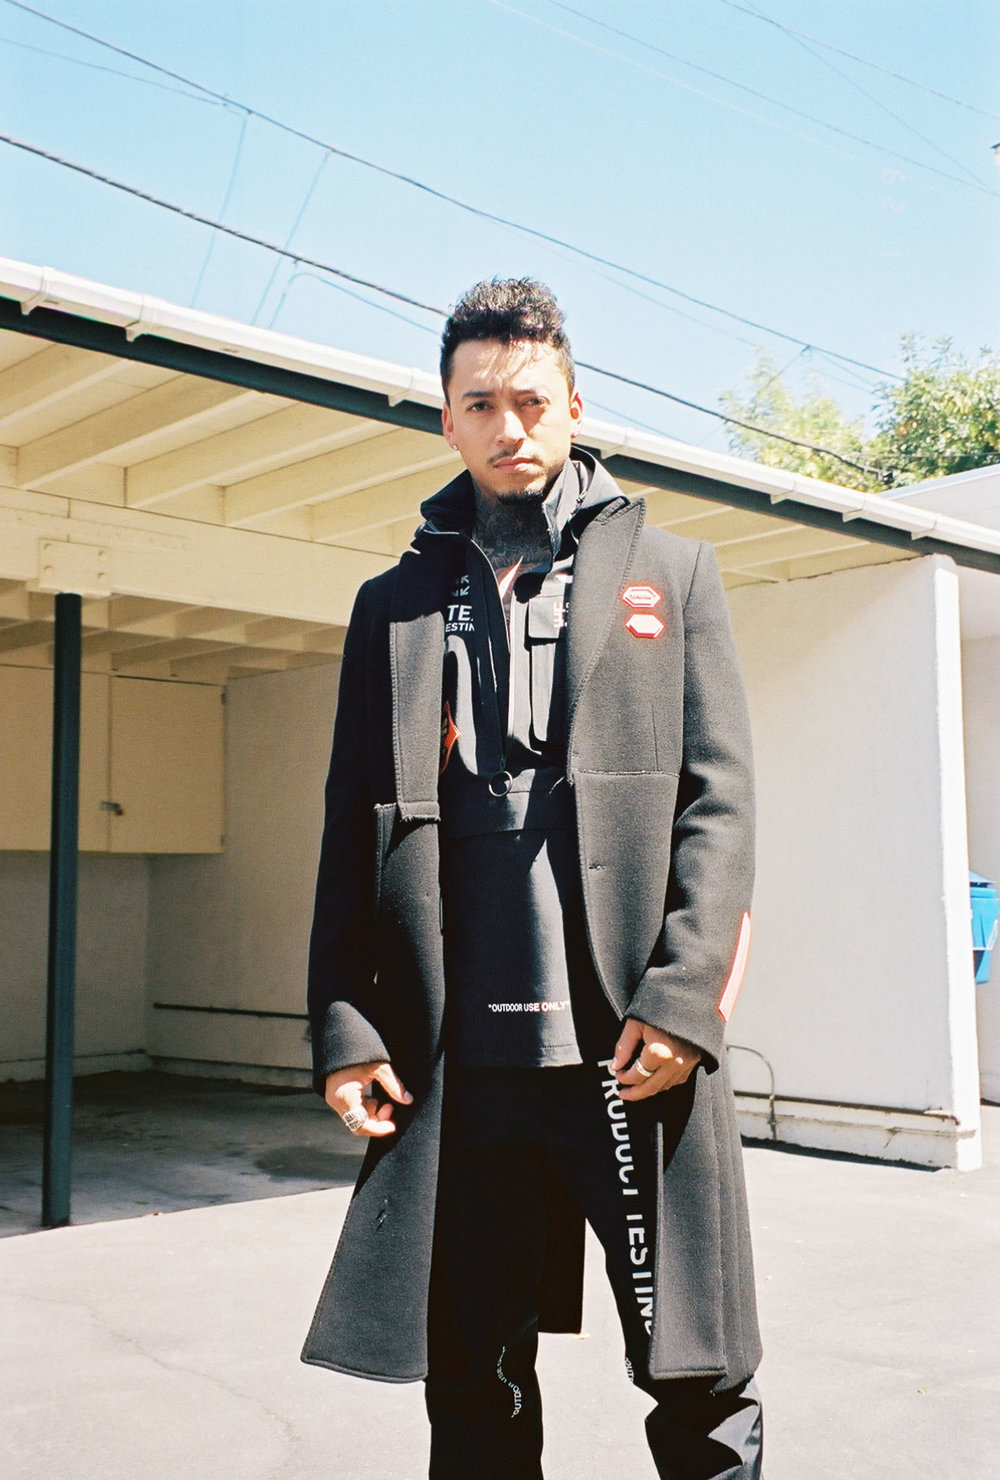 OFF-WHITE C/O VIRGIL ABLOH coat, jacket and pants, and  CHROME HEARTS  rings.